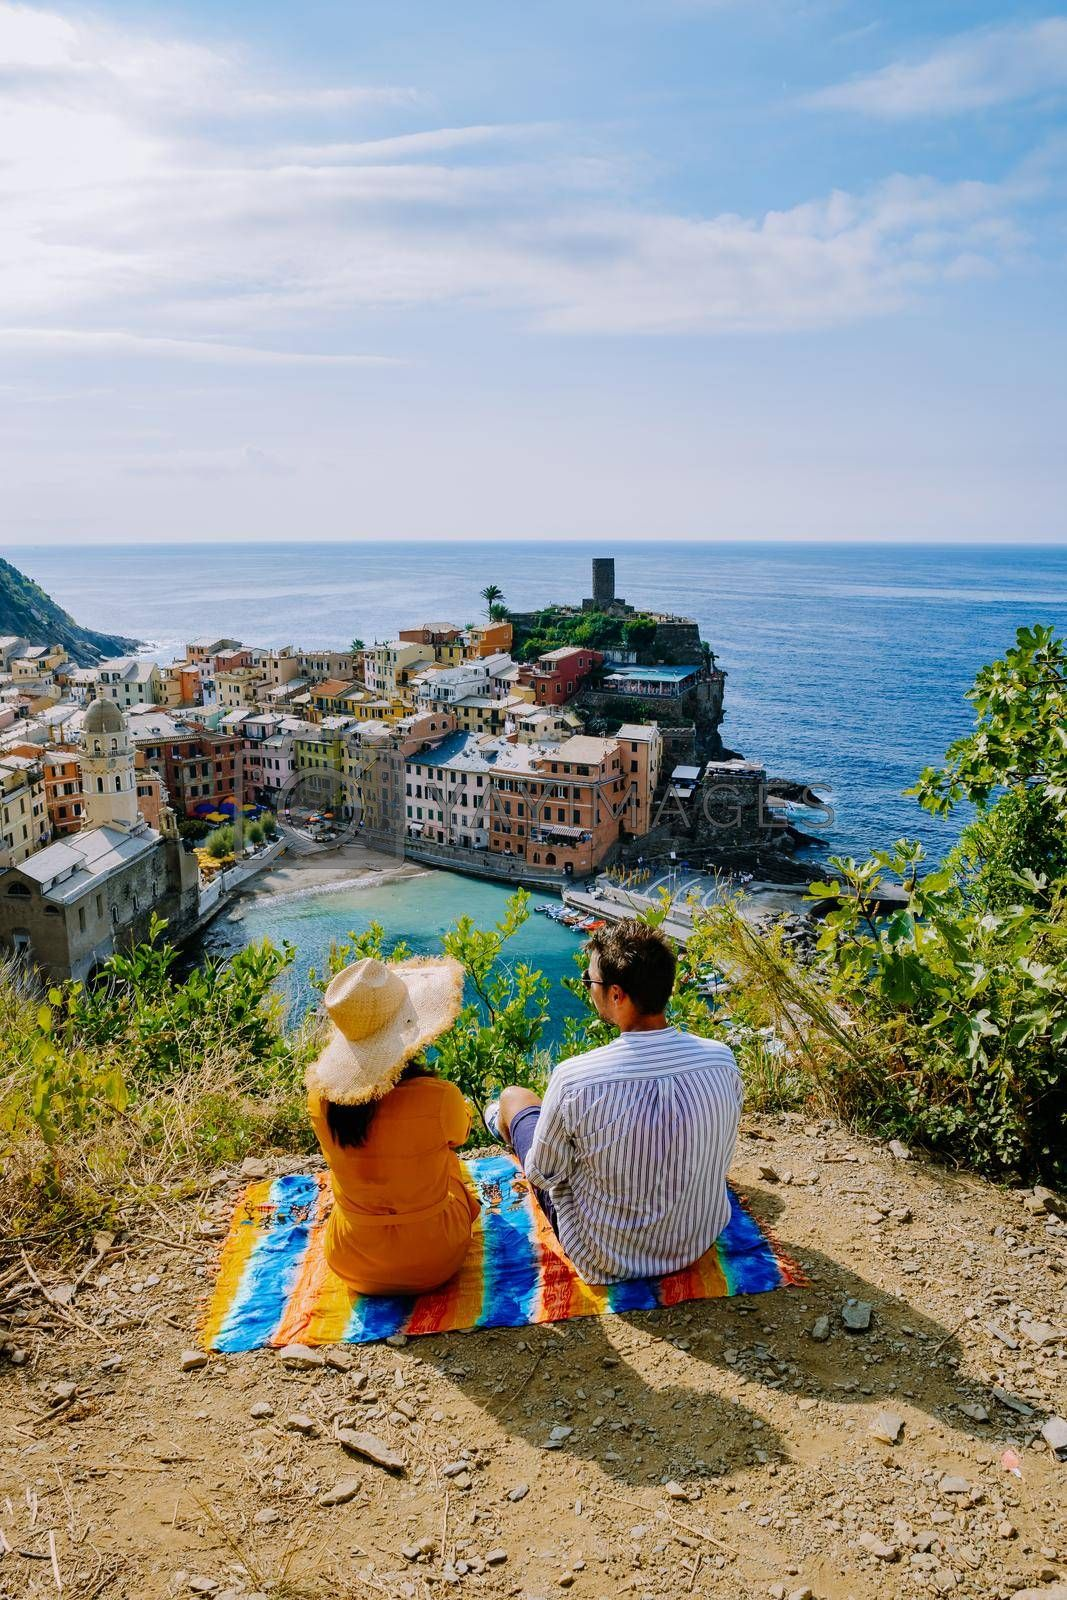 Cinque Terre, Italy, The picturesque coastal village of Vernazza, Cinque Terre, Italy, couple man, and woman European men and Asian woman watching the sunset at Vernazza Cinque Terre Italy